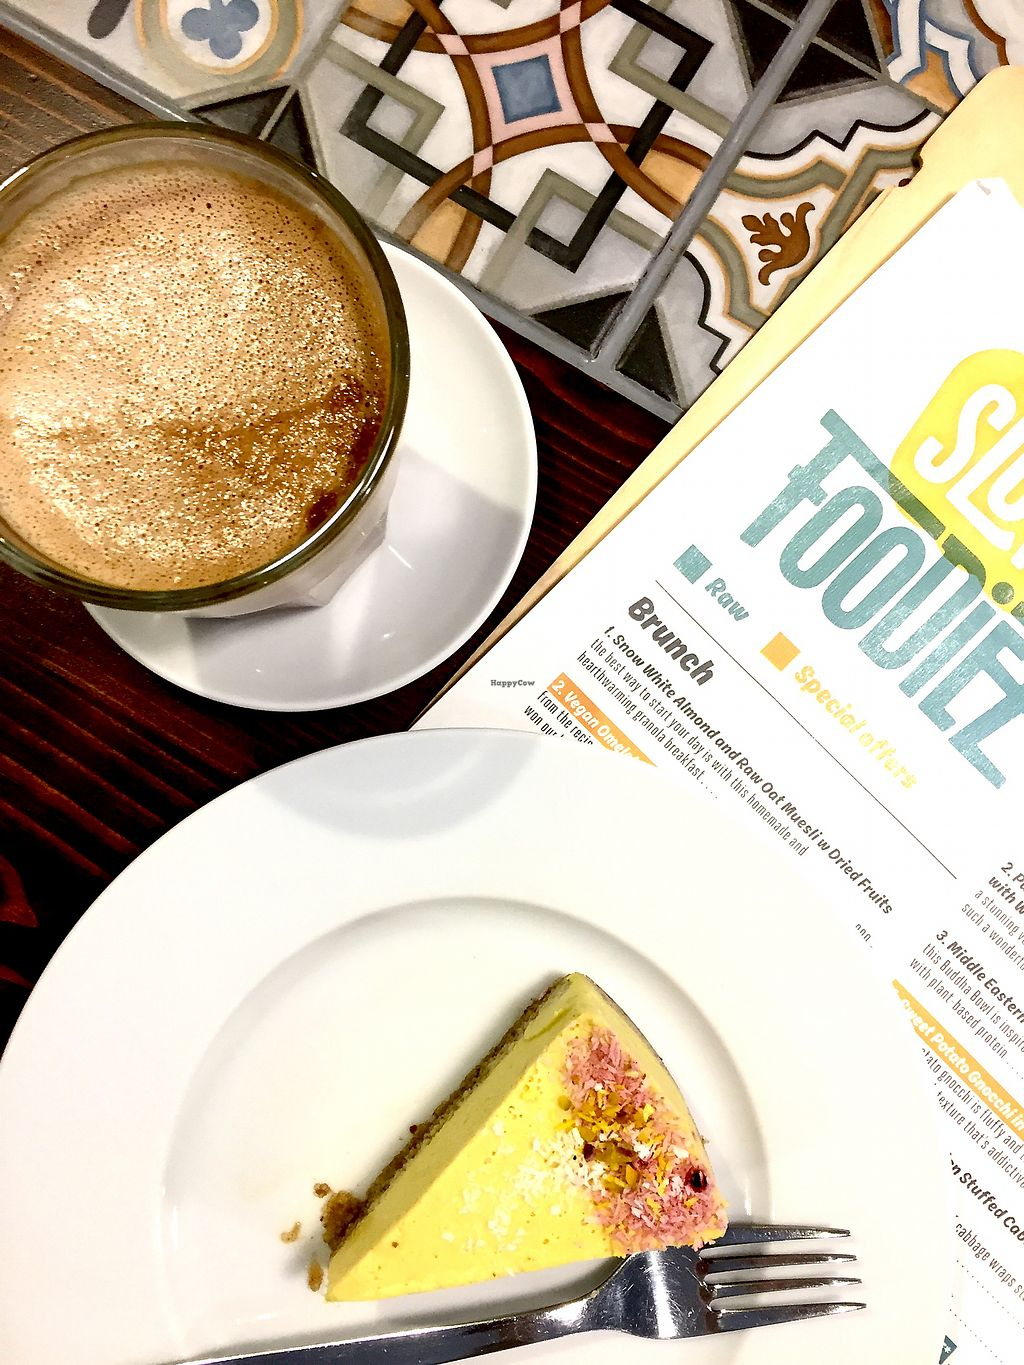 """Photo of Slow Foodiez  by <a href=""""/members/profile/KatjaValentinaKramp"""">KatjaValentinaKramp</a> <br/>Raw orange / ginger cake and oat milk latte  <br/> January 30, 2018  - <a href='/contact/abuse/image/65490/352814'>Report</a>"""